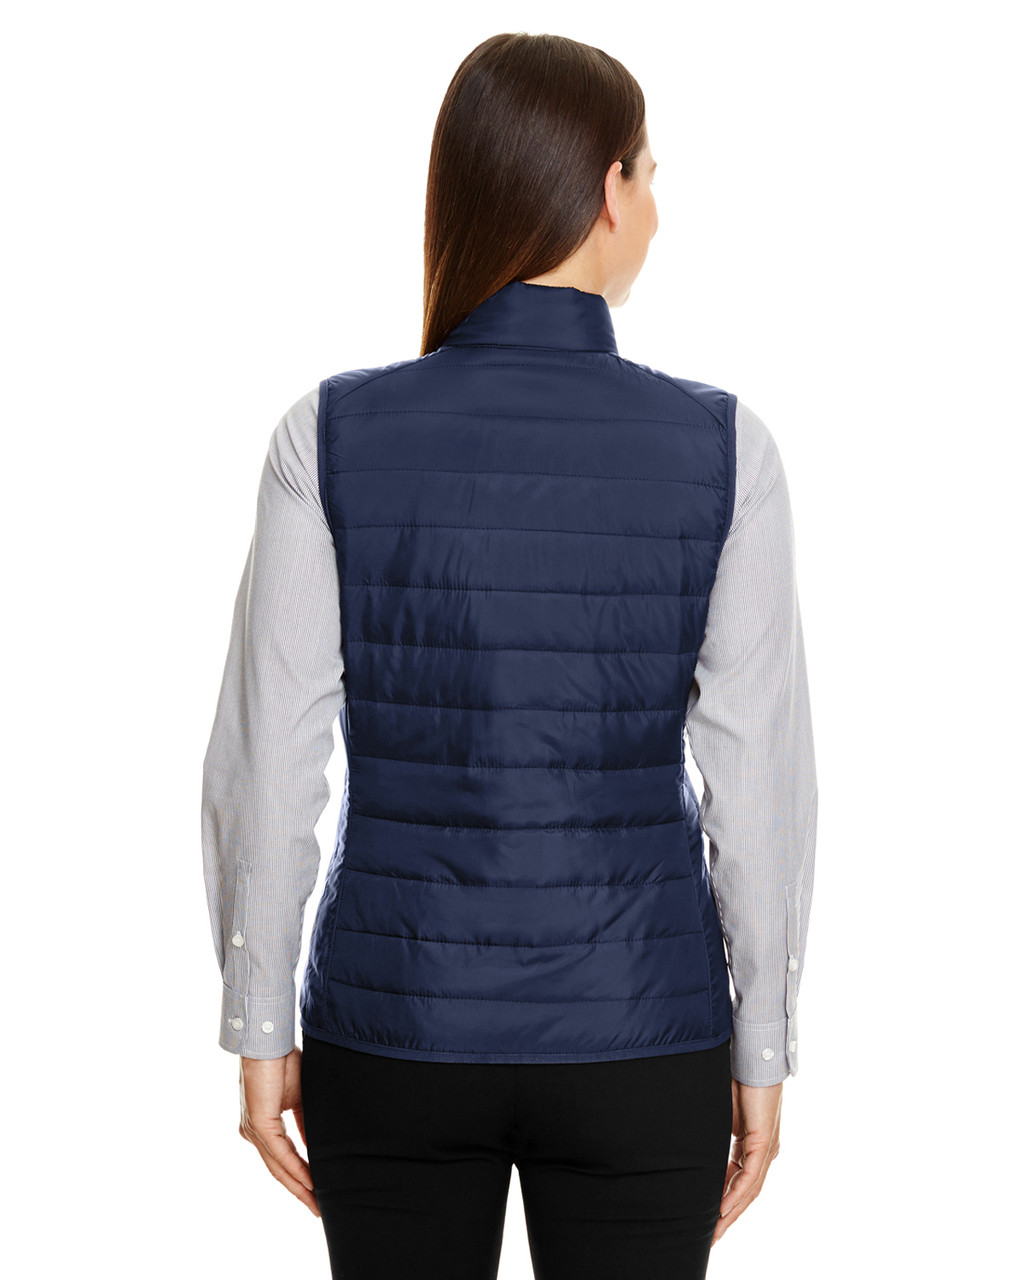 Classic Navy - CE702W Ash City - Core 365 Ladies' Prevail Packable Puffer Vest | Blankclothing.ca